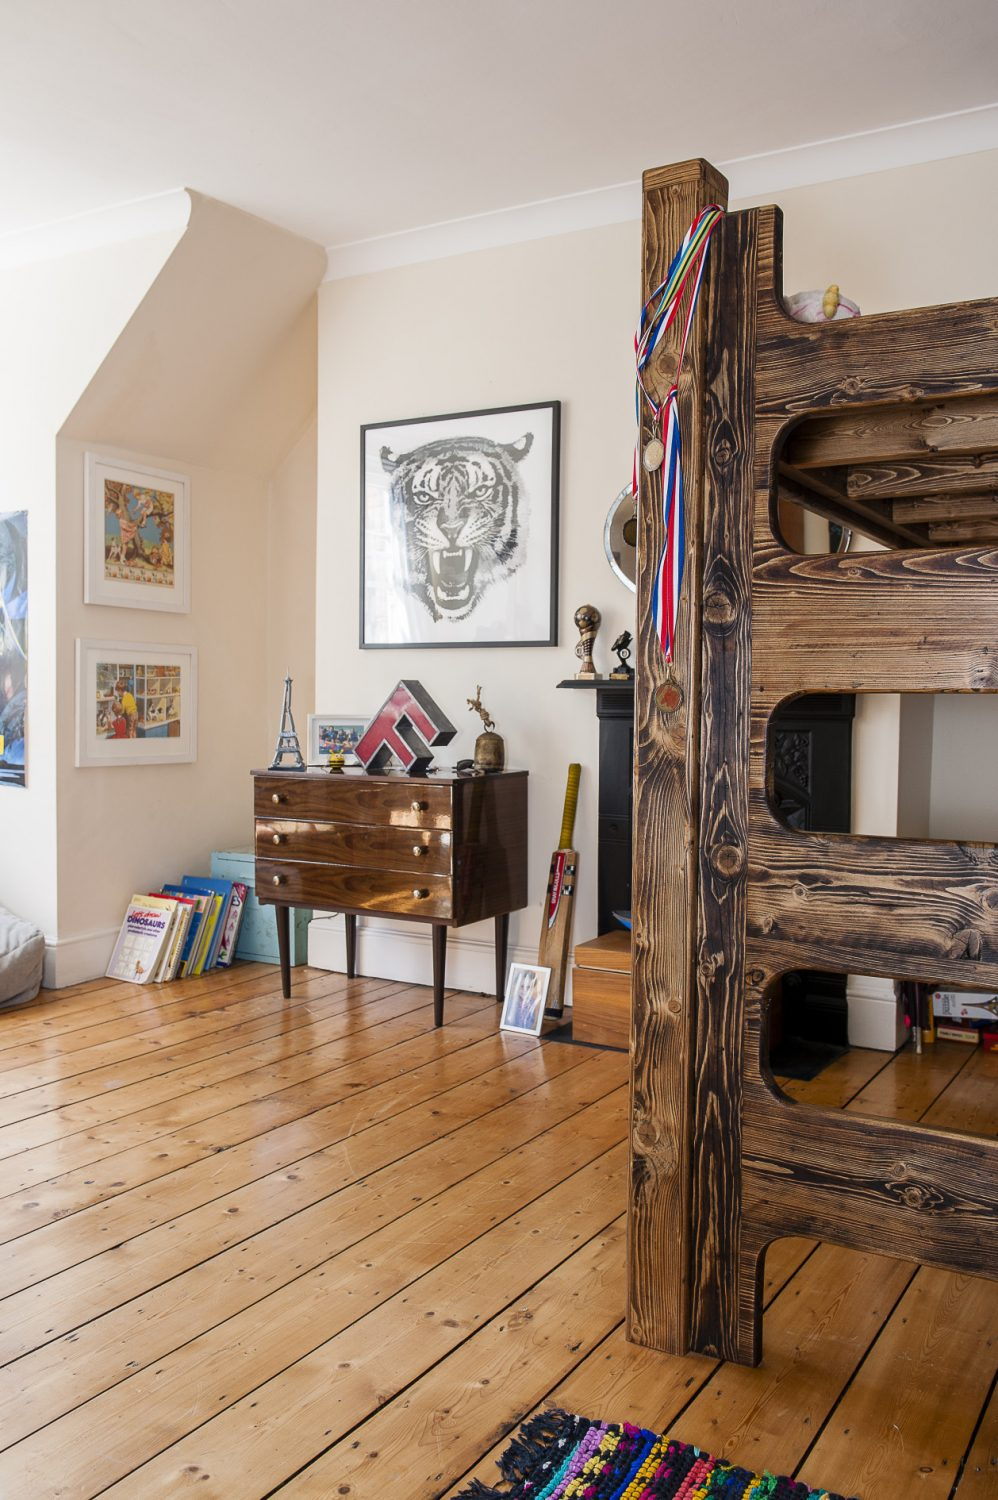 Their son's room has an elevated bed made from stained timbers. The 1950s chest of drawers was found in a charity shop in London and the F - the first letter of their son's name - was an online find.